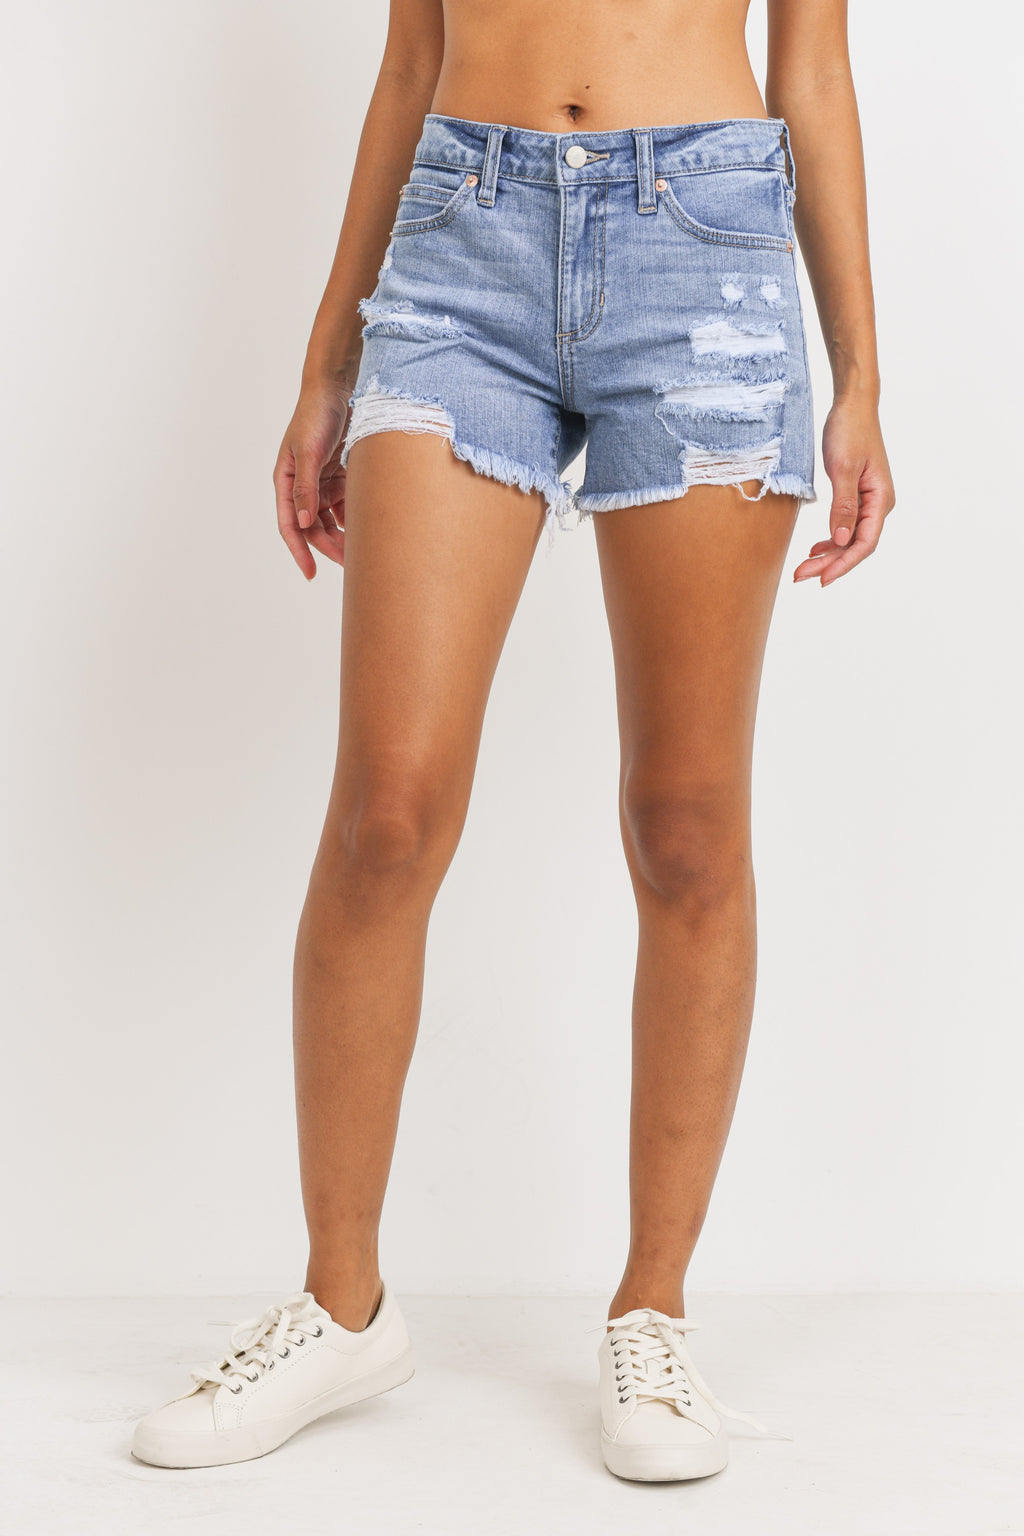 Just USA Mid Rise Distressed Shorts- Light Wash